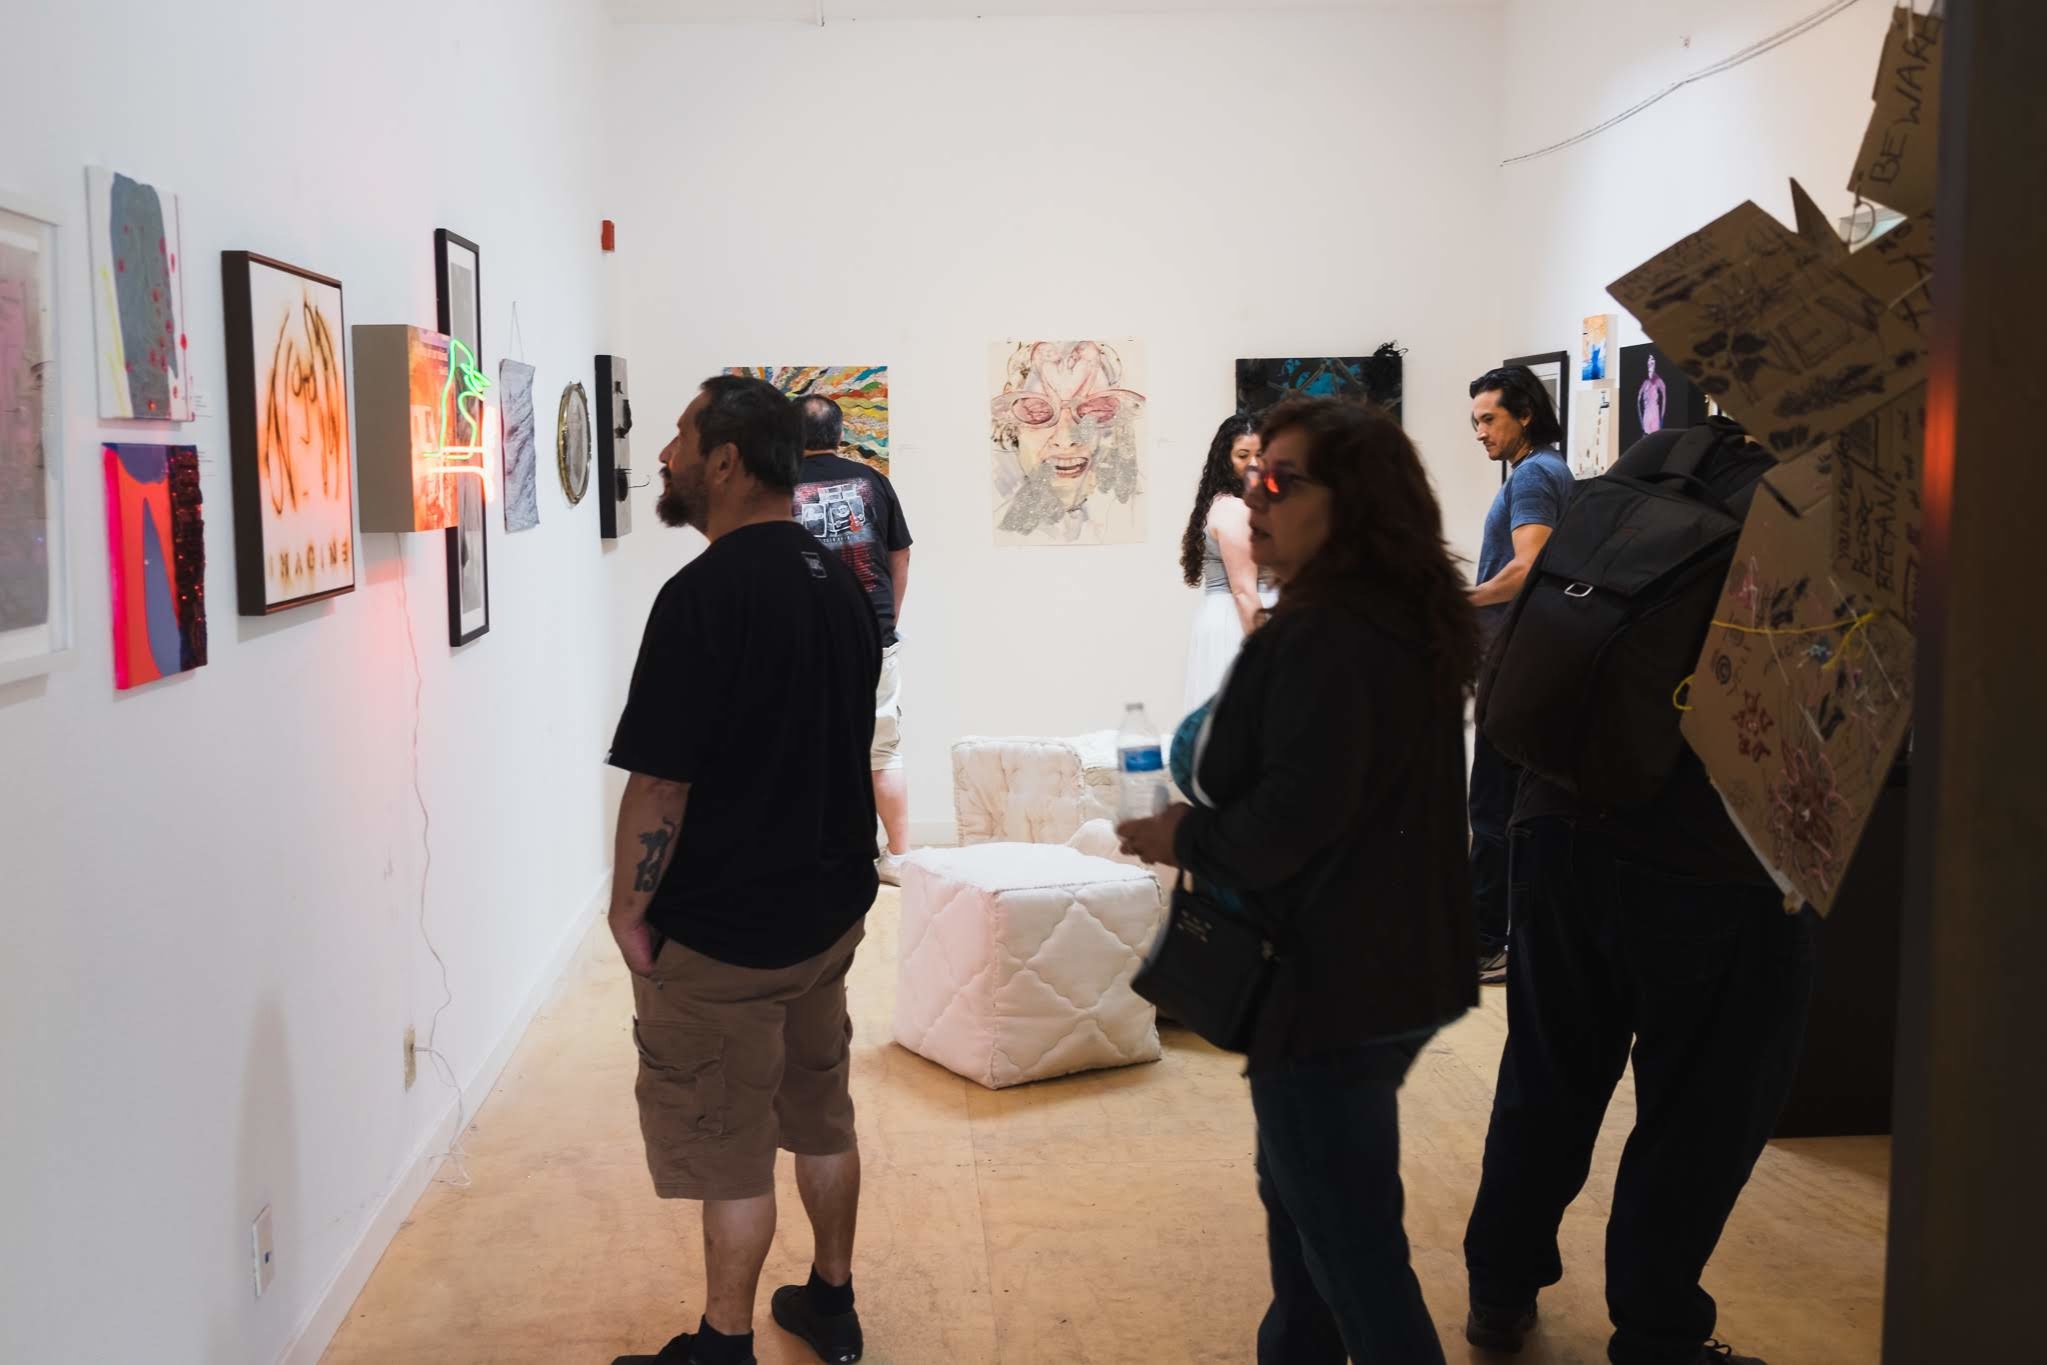 studio space II - Group Show during BRS Arts Festival 2018